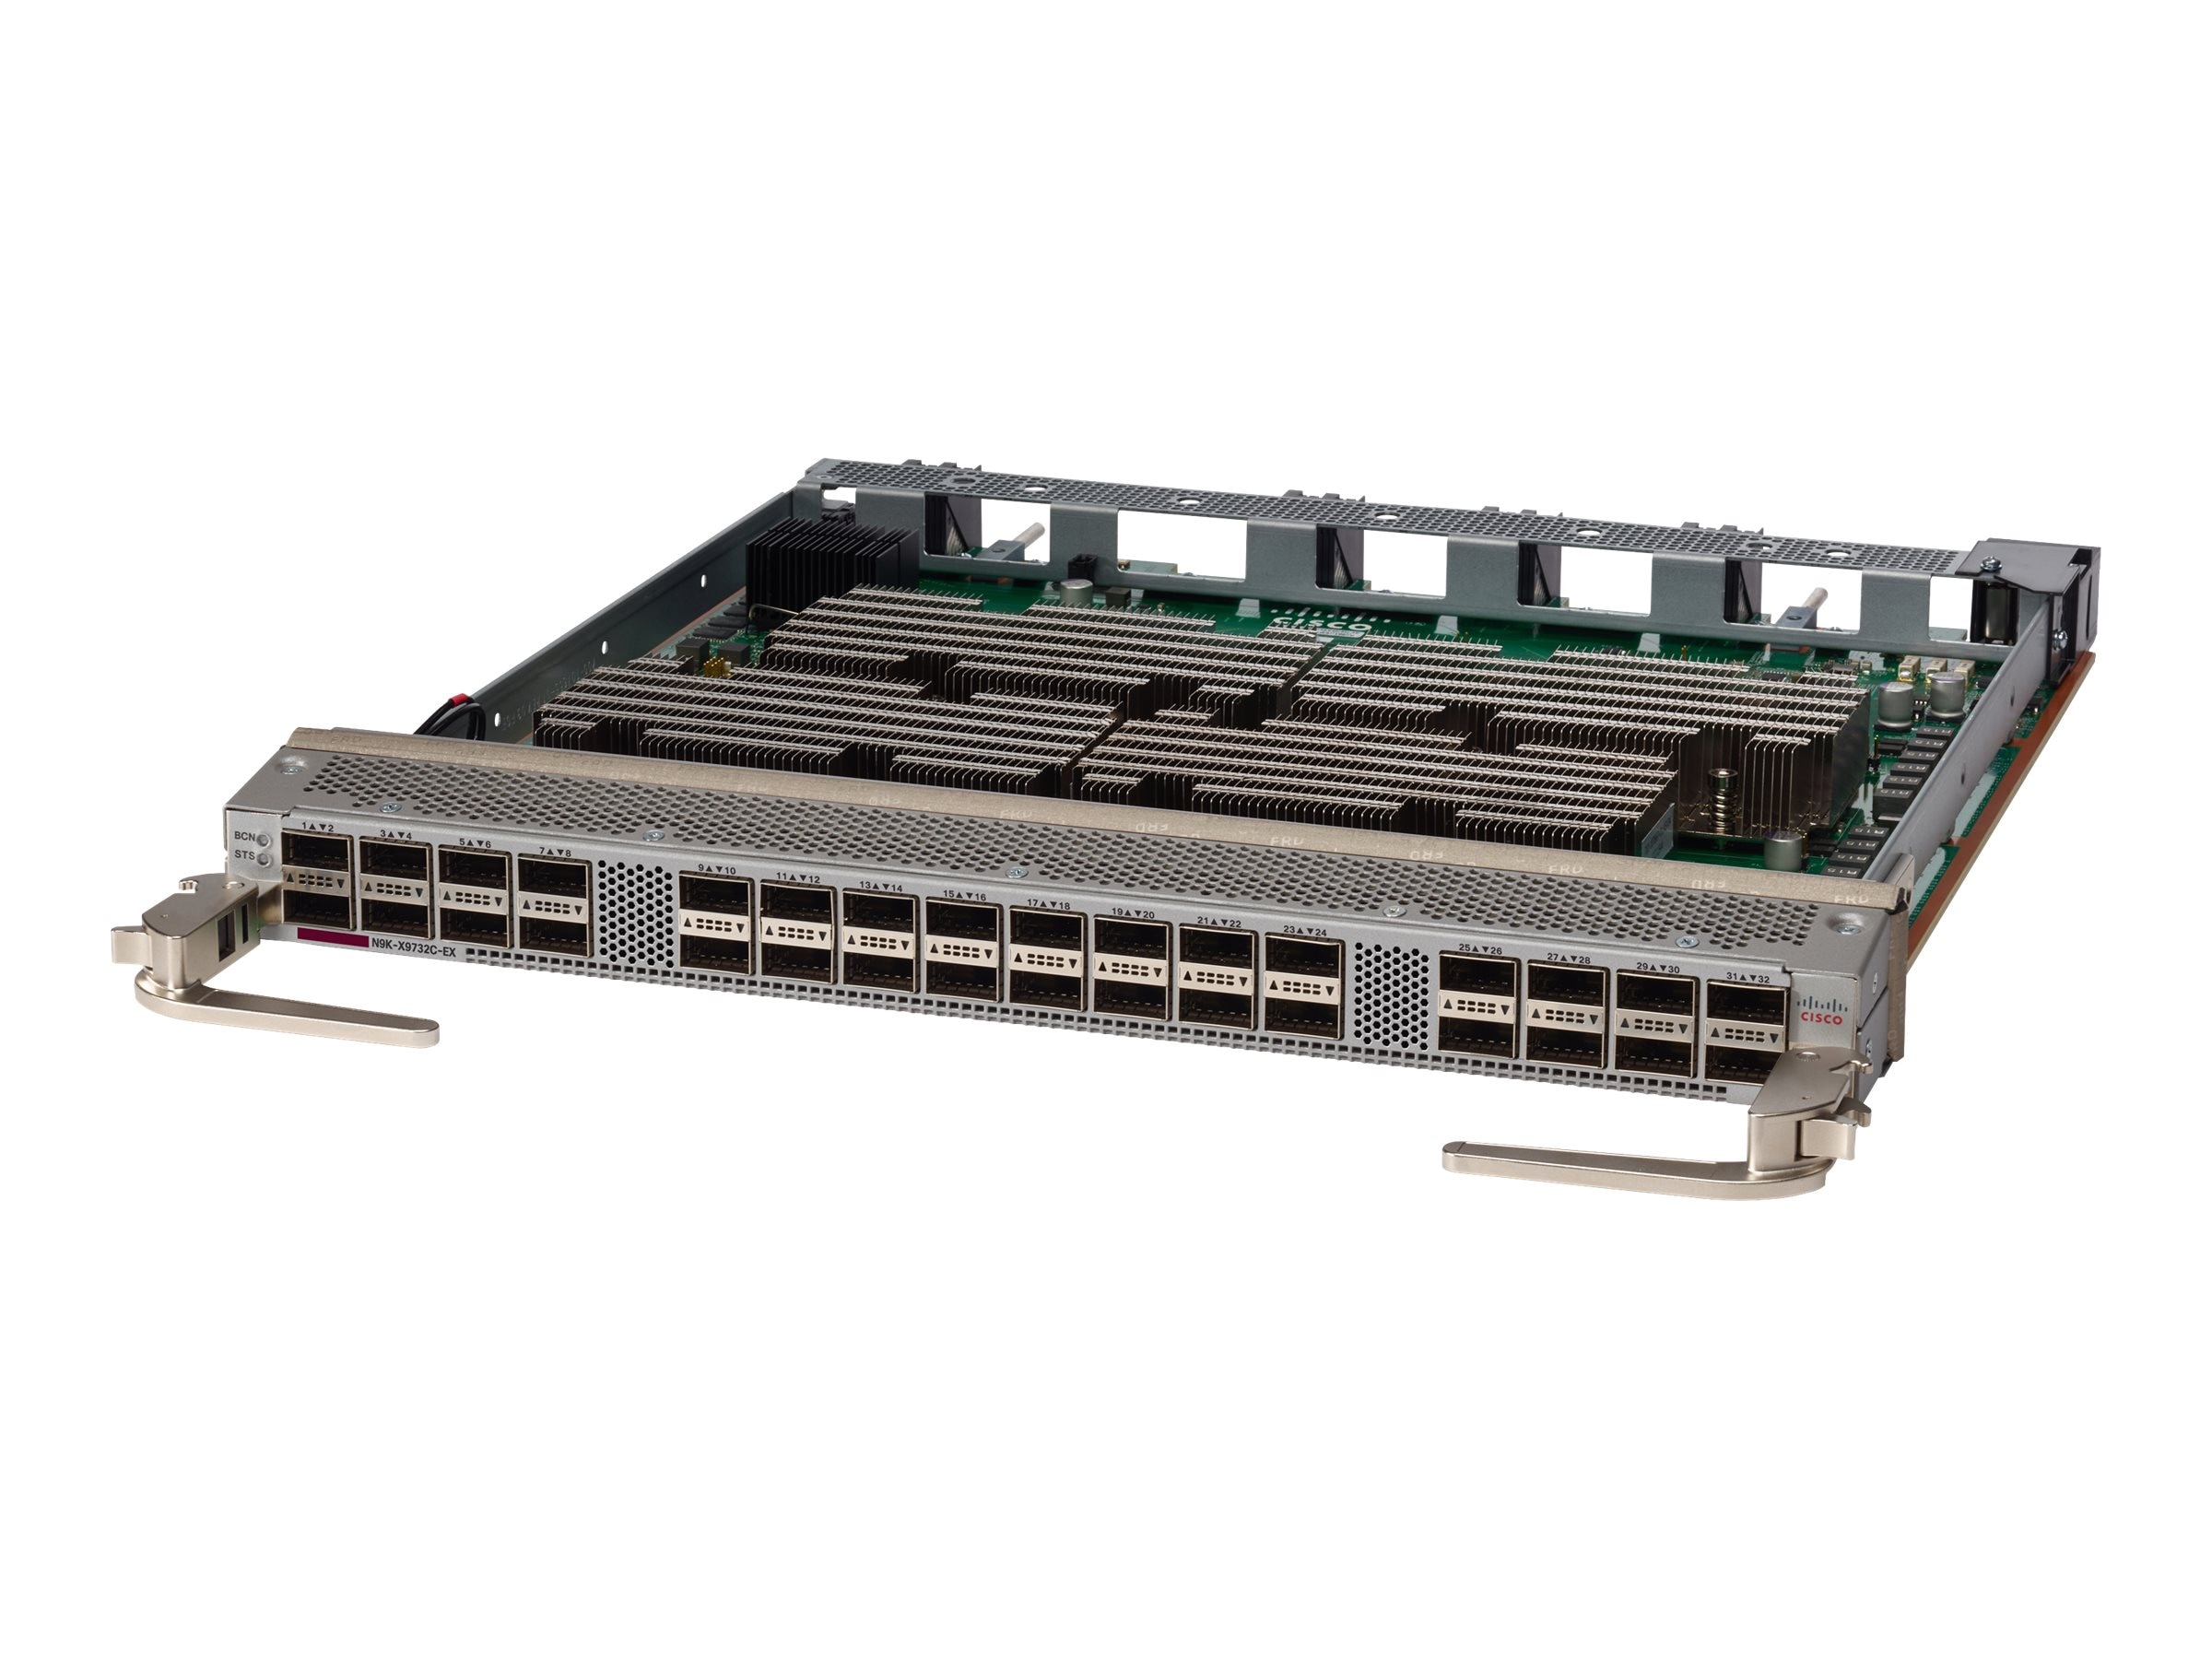 Cisco NEXUS 9500 32-port 40 100GbE QSFP28 Line Card, N9K-X9732C-EX